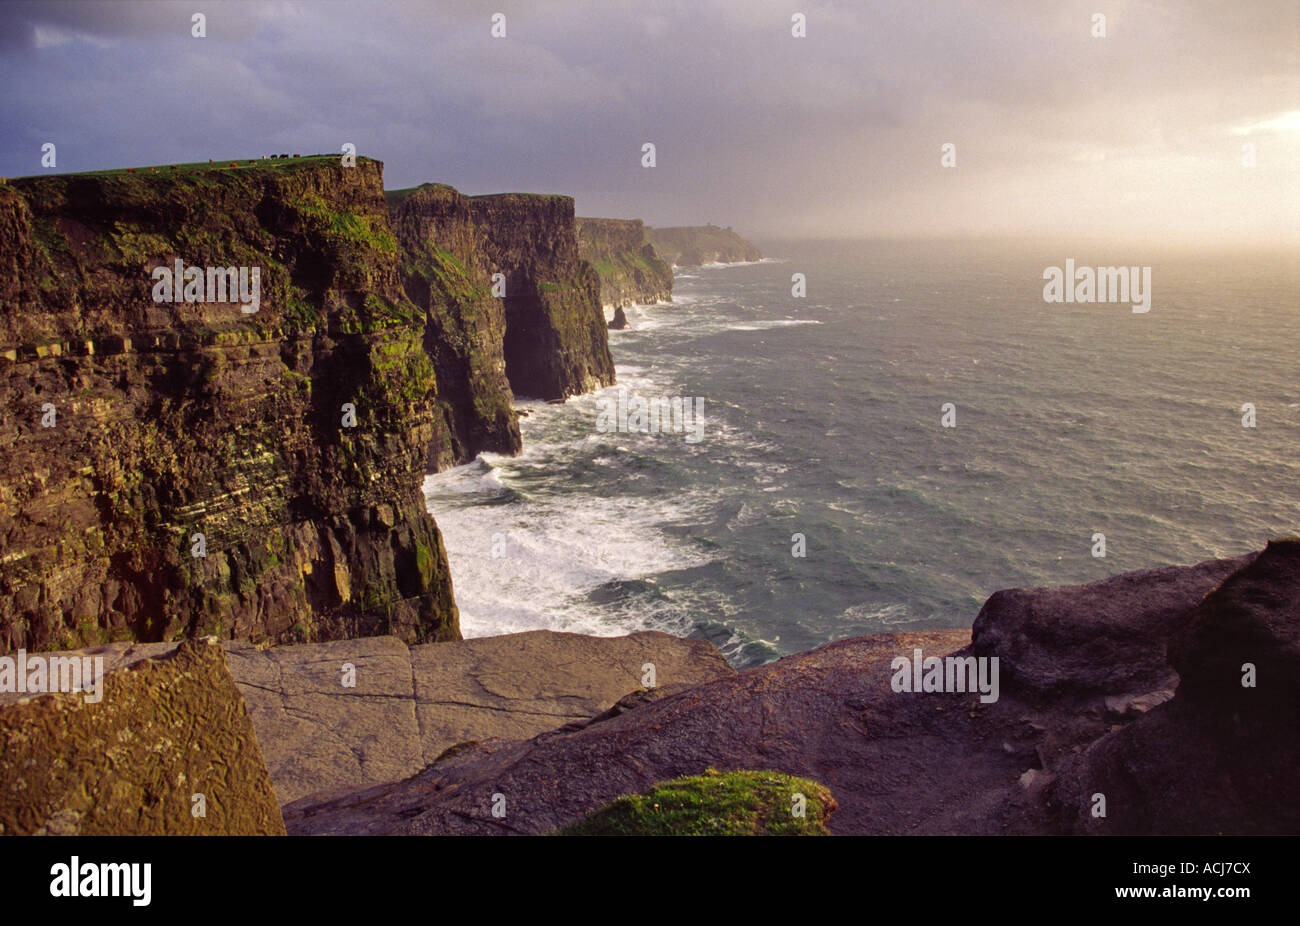 The Cliffs of Moher, Co Clare, Ireland. - Stock Image